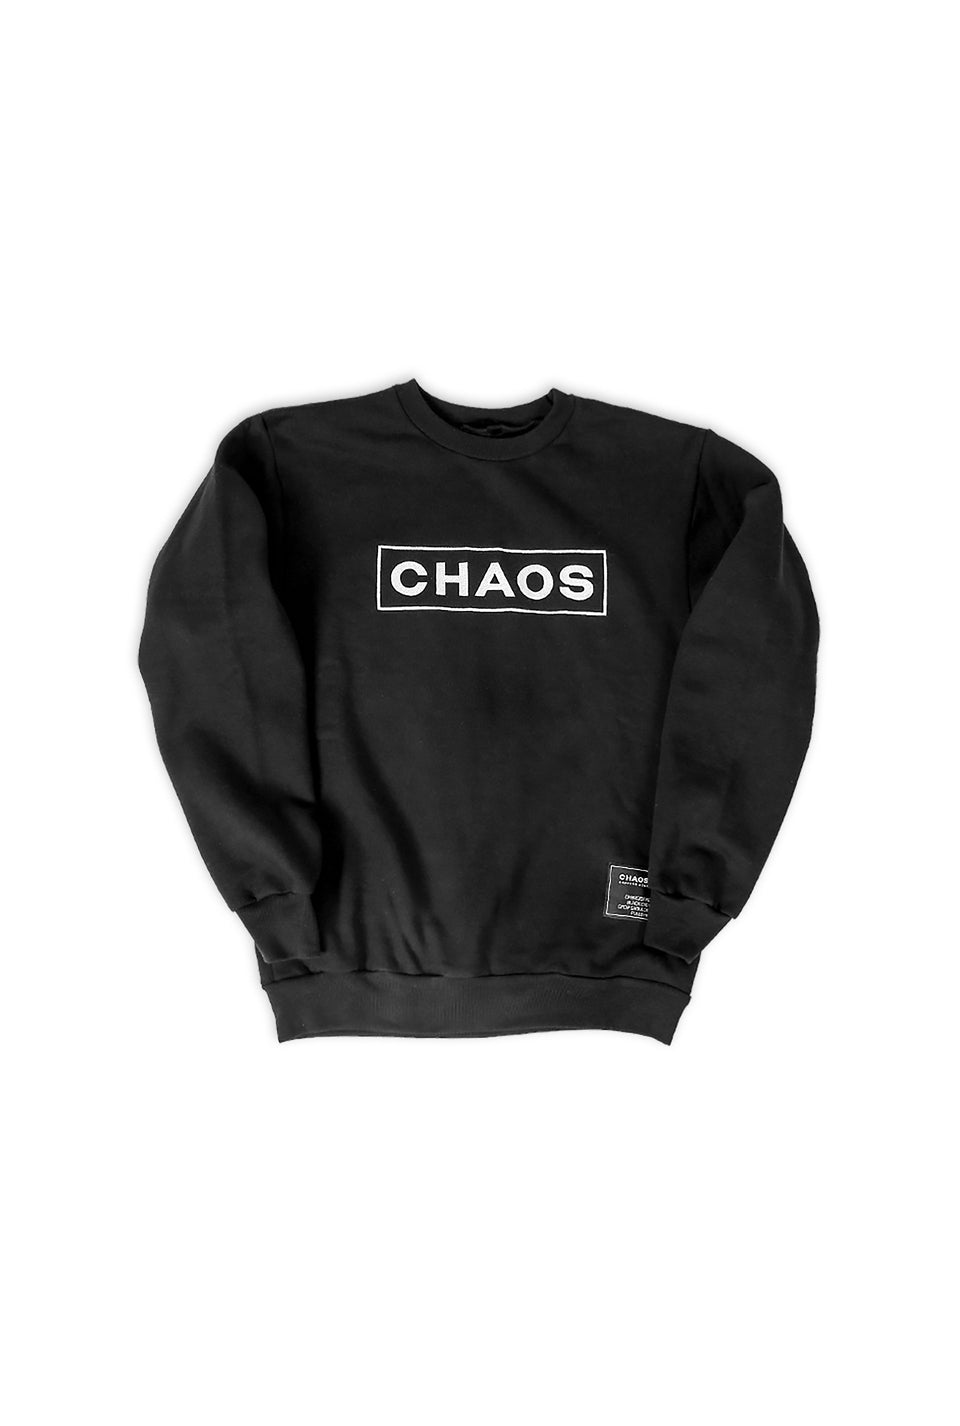 Chaos Embroidered Black Crew Pullover